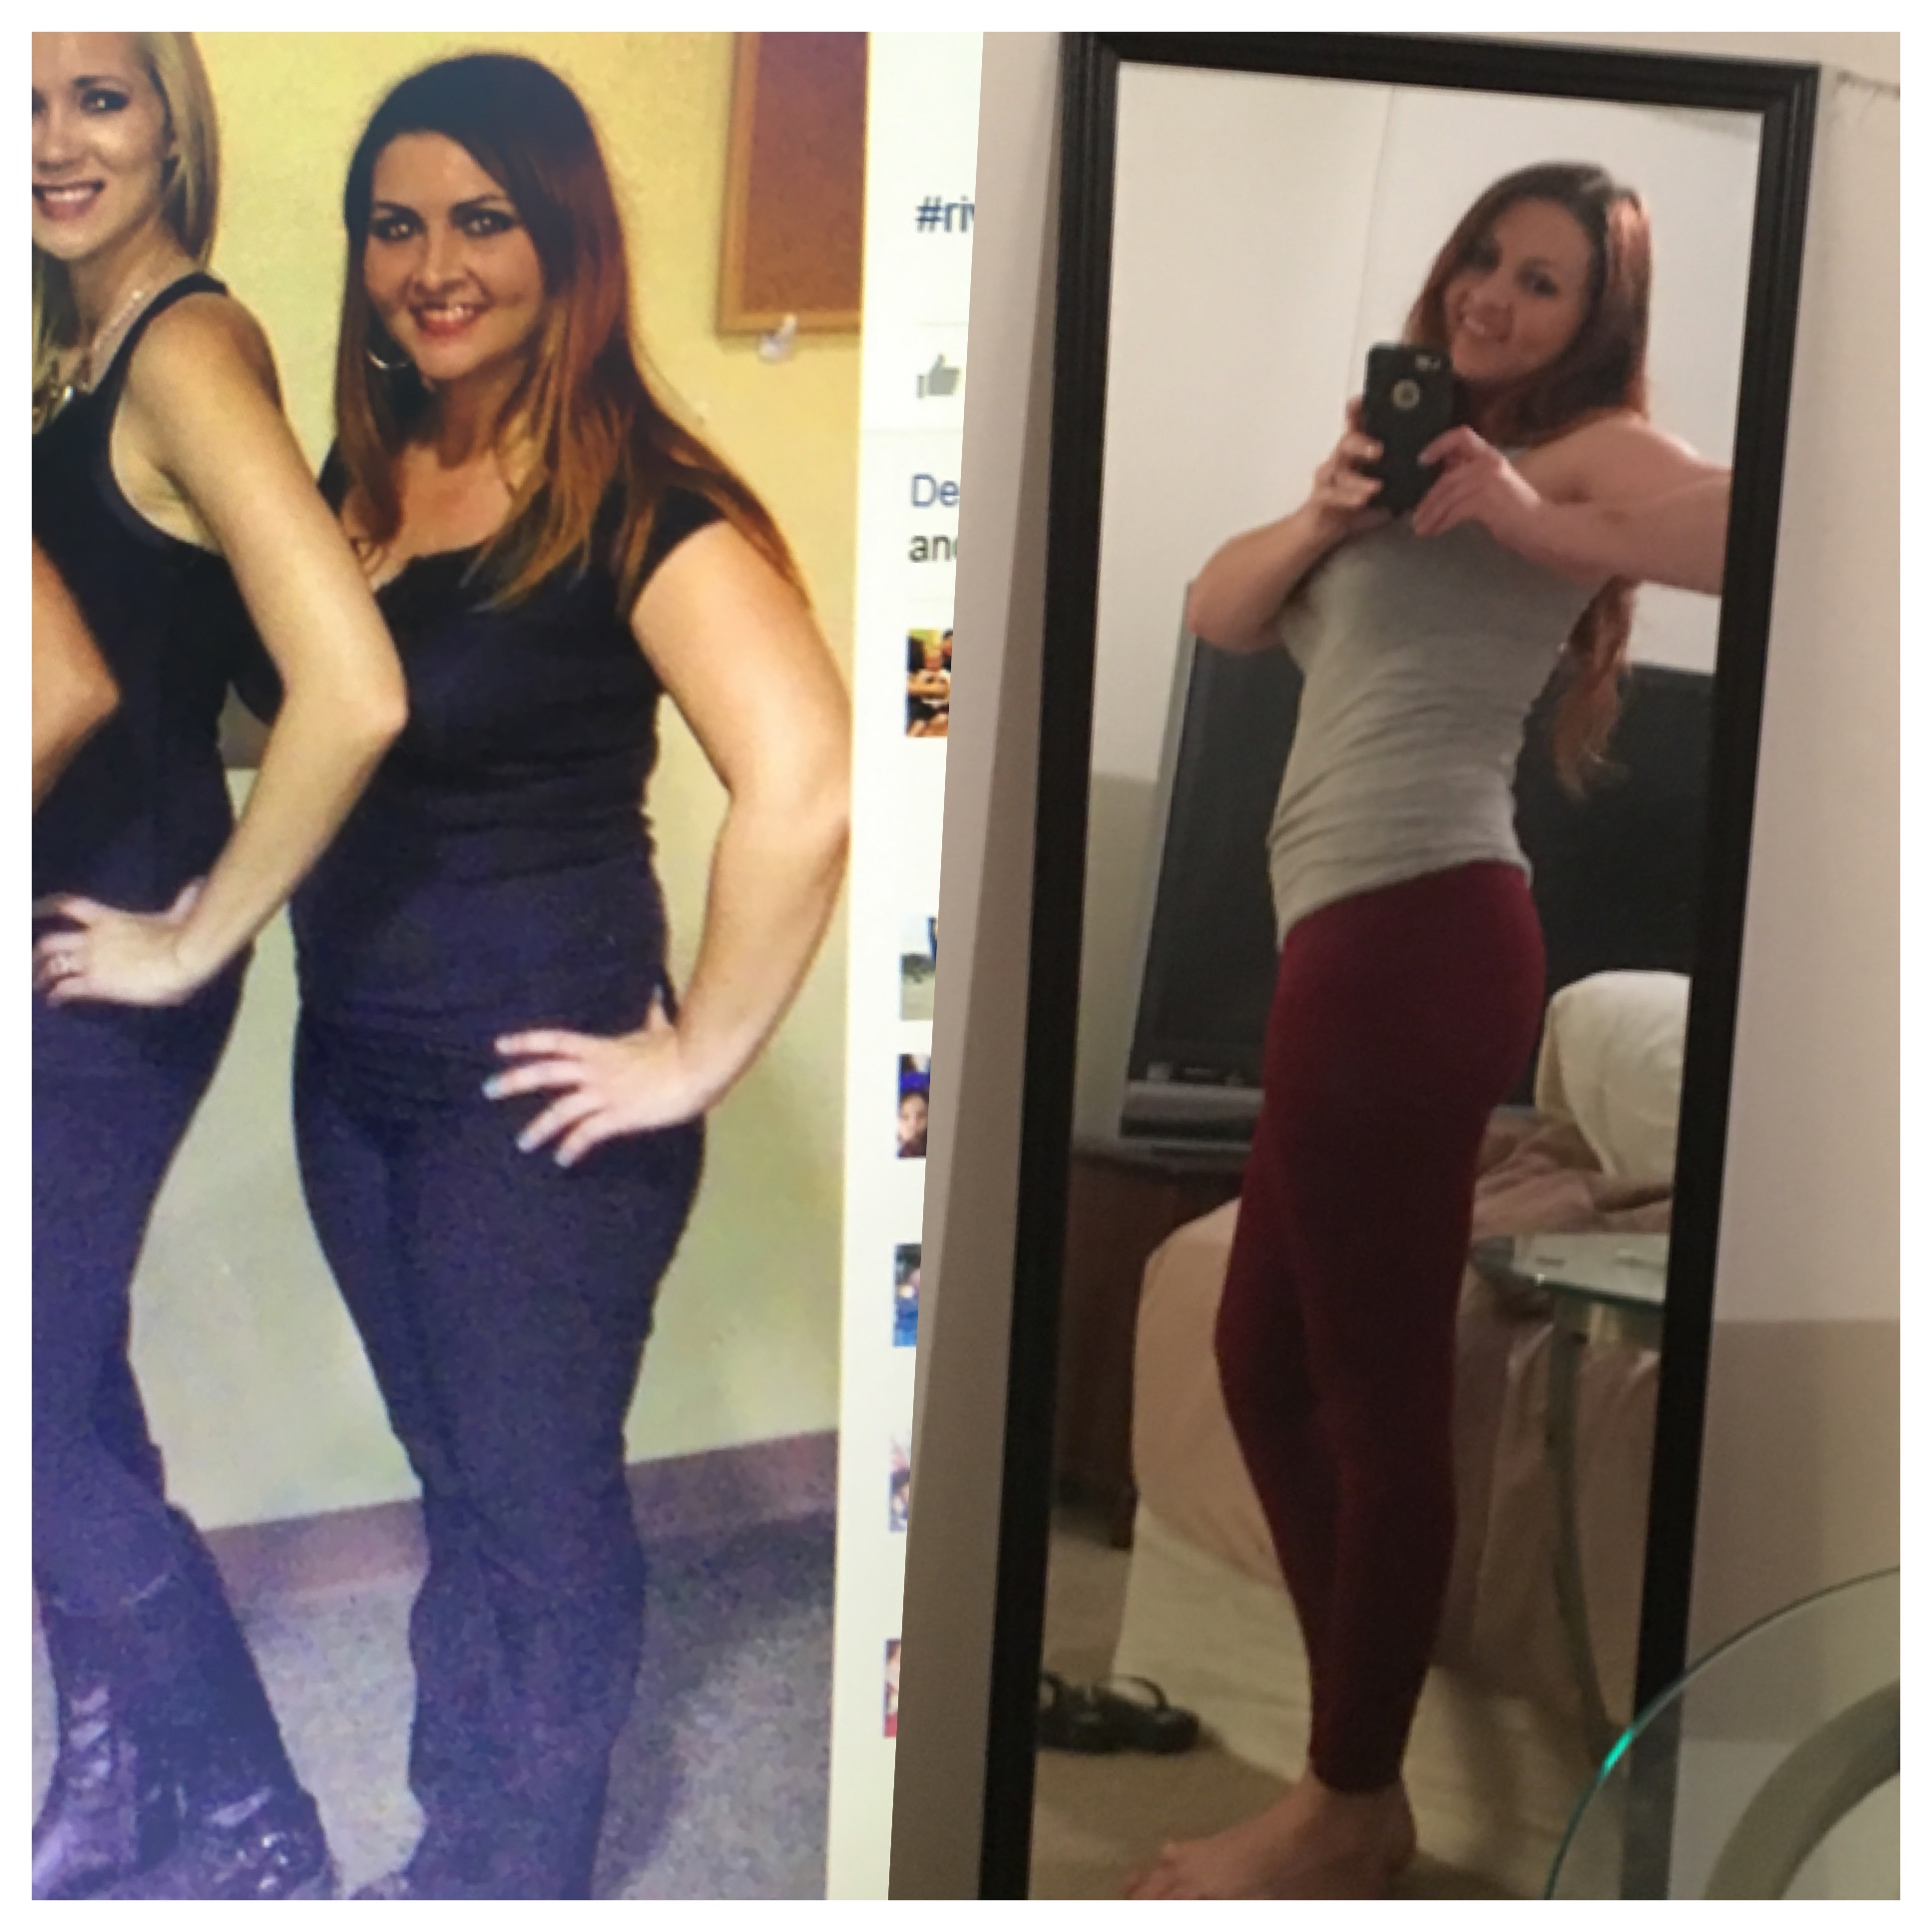 Great success story! Read before and after fitness transformation stories from women and men who hit weight loss goals and got THAT BODY with training and meal prep. Find inspiration, motivation, and workout tips | 42 Pounds Lost: Zumba changed my ways